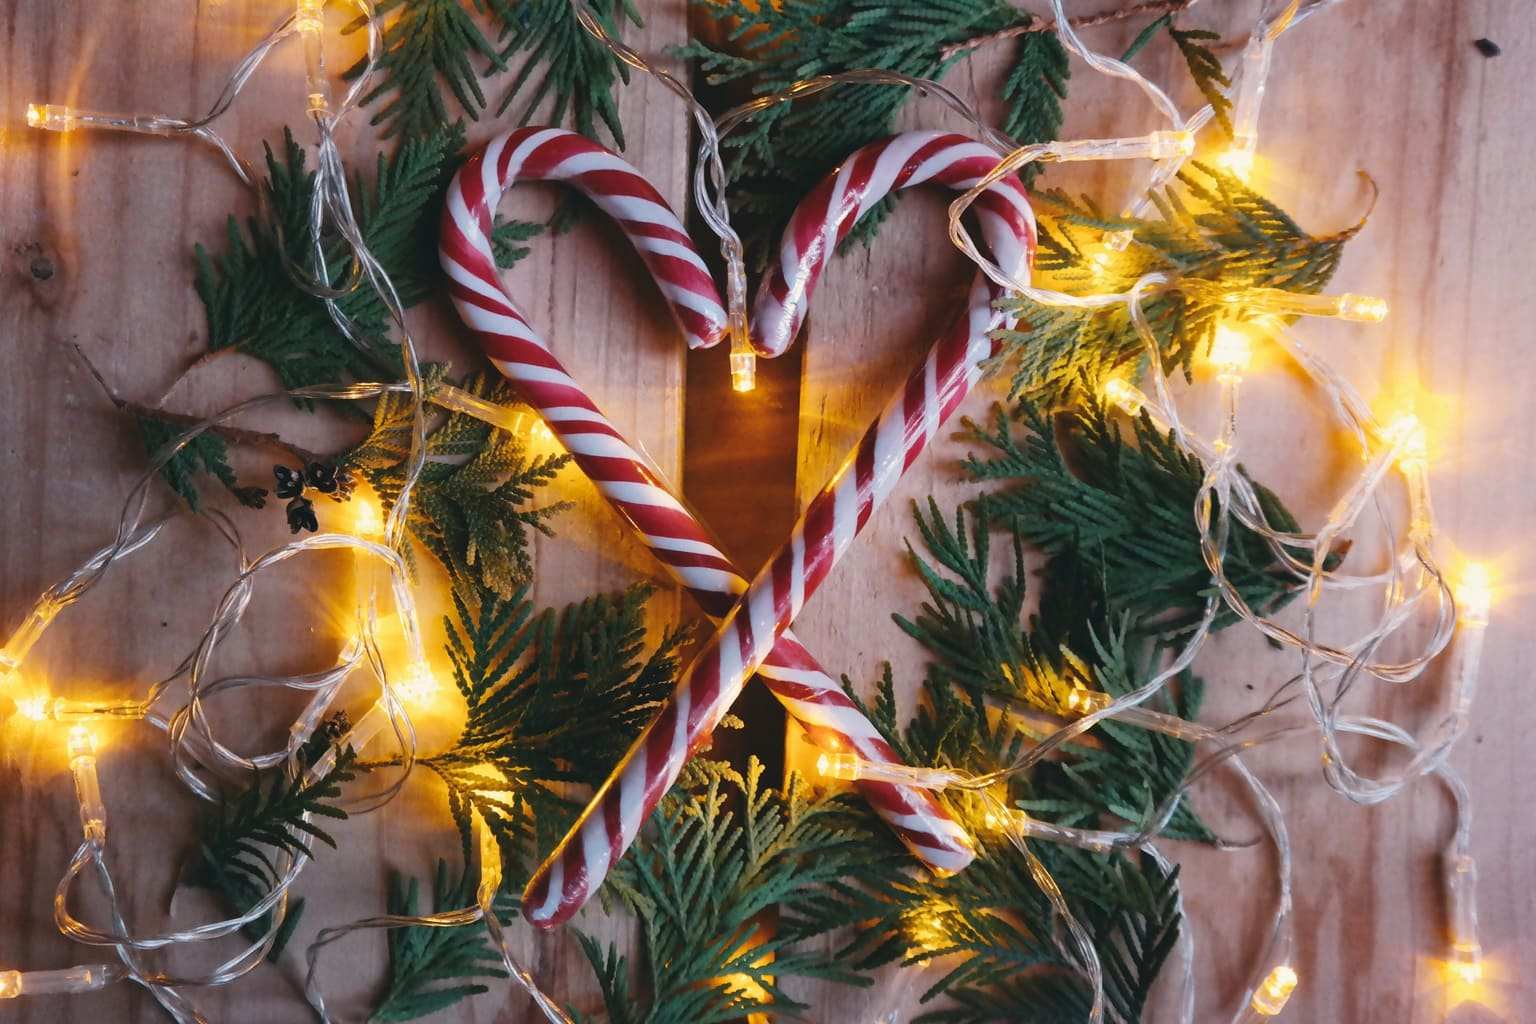 Two candy canes forming a heart as a Christmas decoration